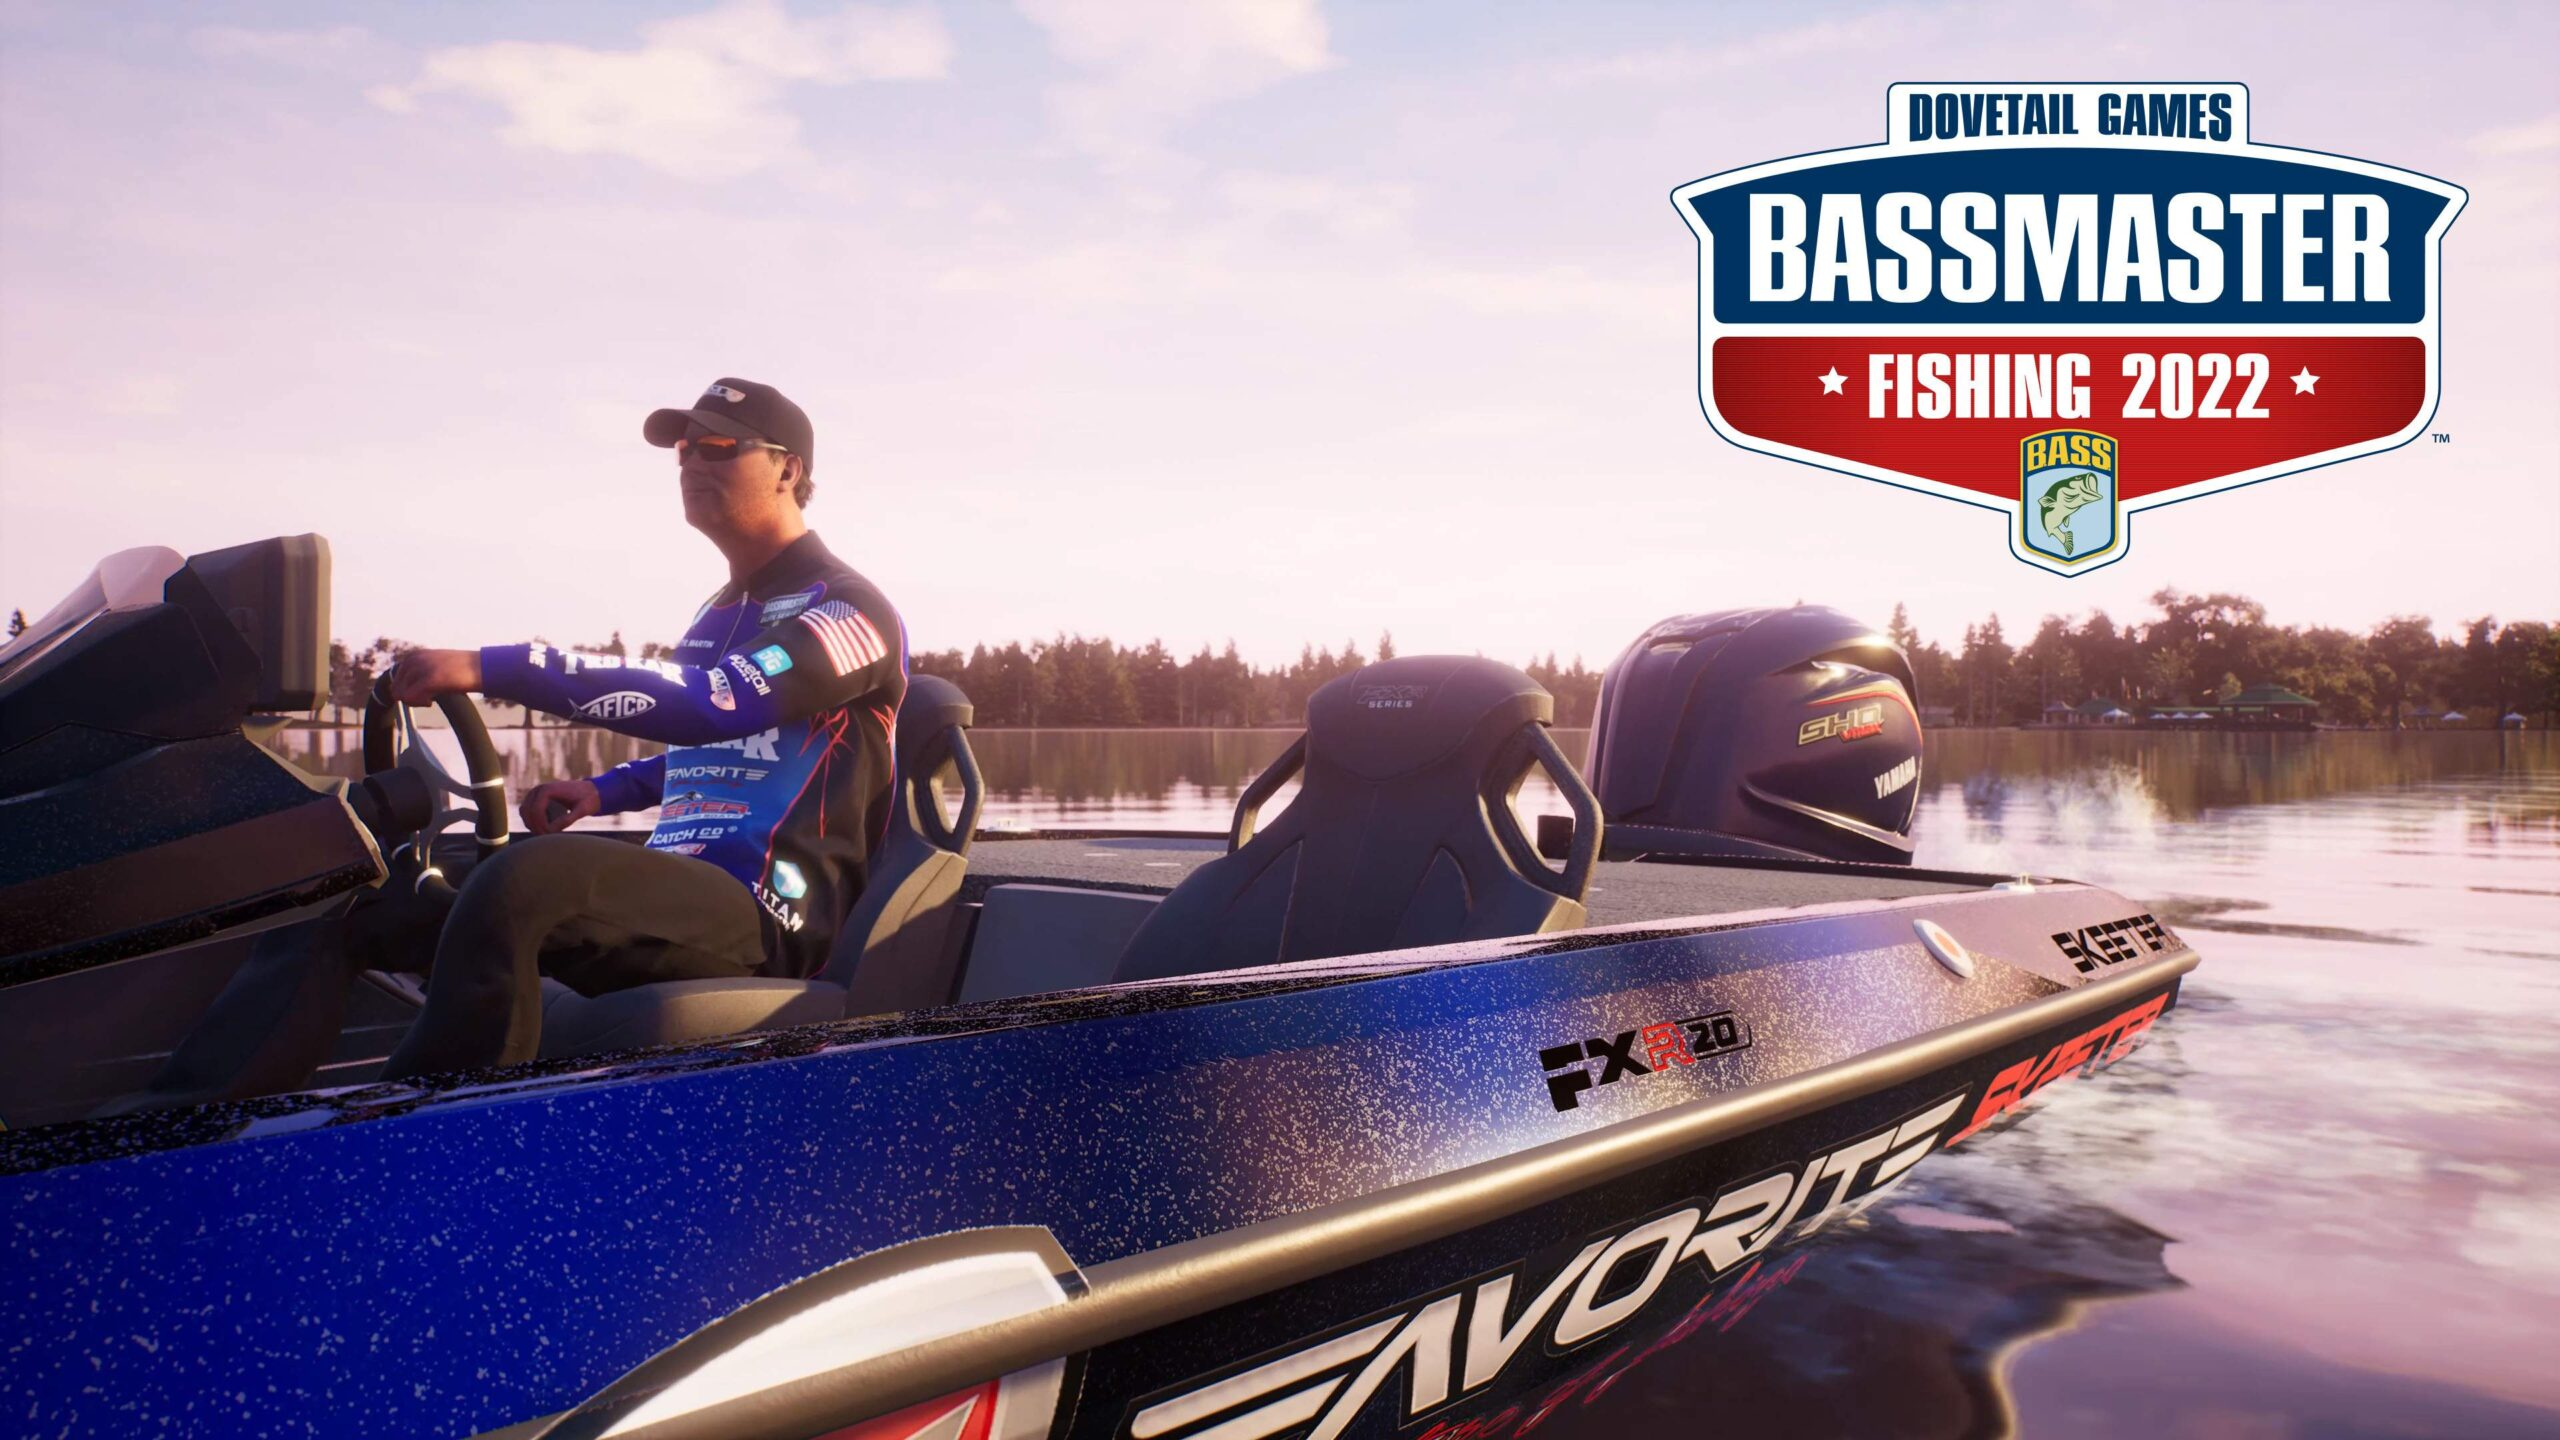 Video For Bassmaster Fishing 2022 Launching Day One with Xbox Game Pass on October 28